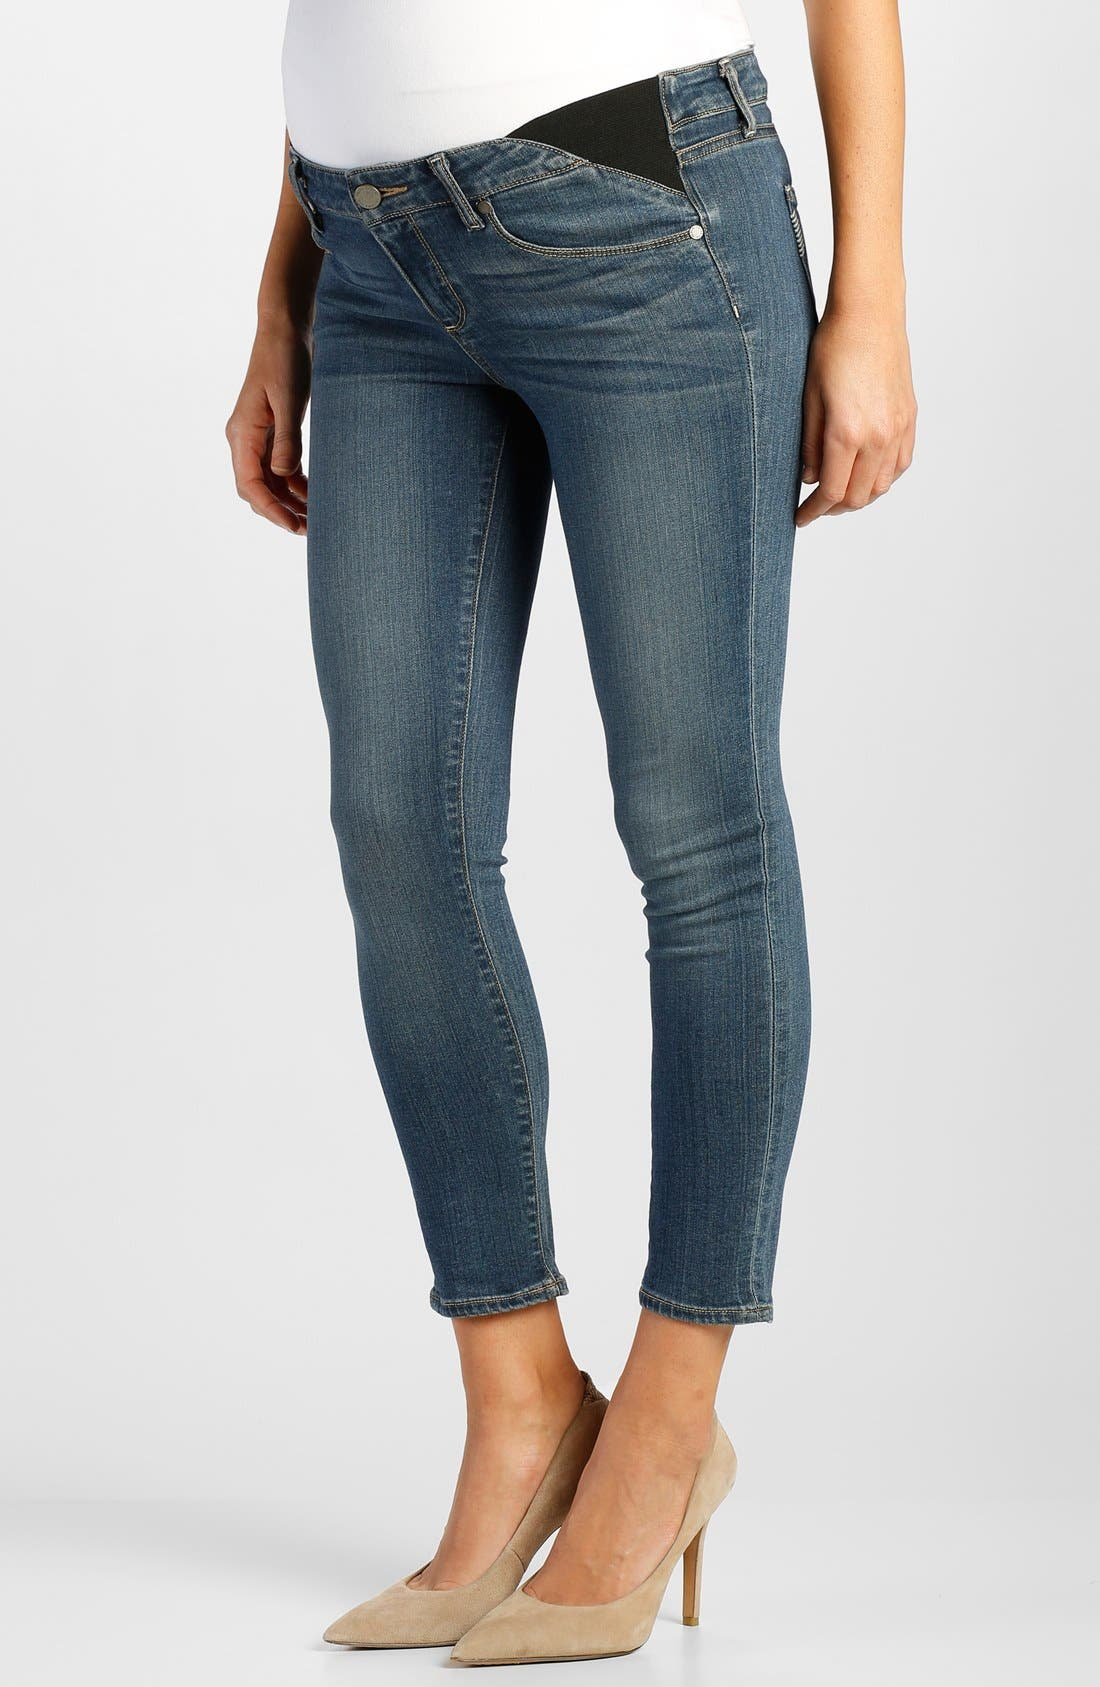 Main Image - Paige Denim 'Verdugo' Maternity Skinny Jeans with Side Gussets (Tristan Blue)